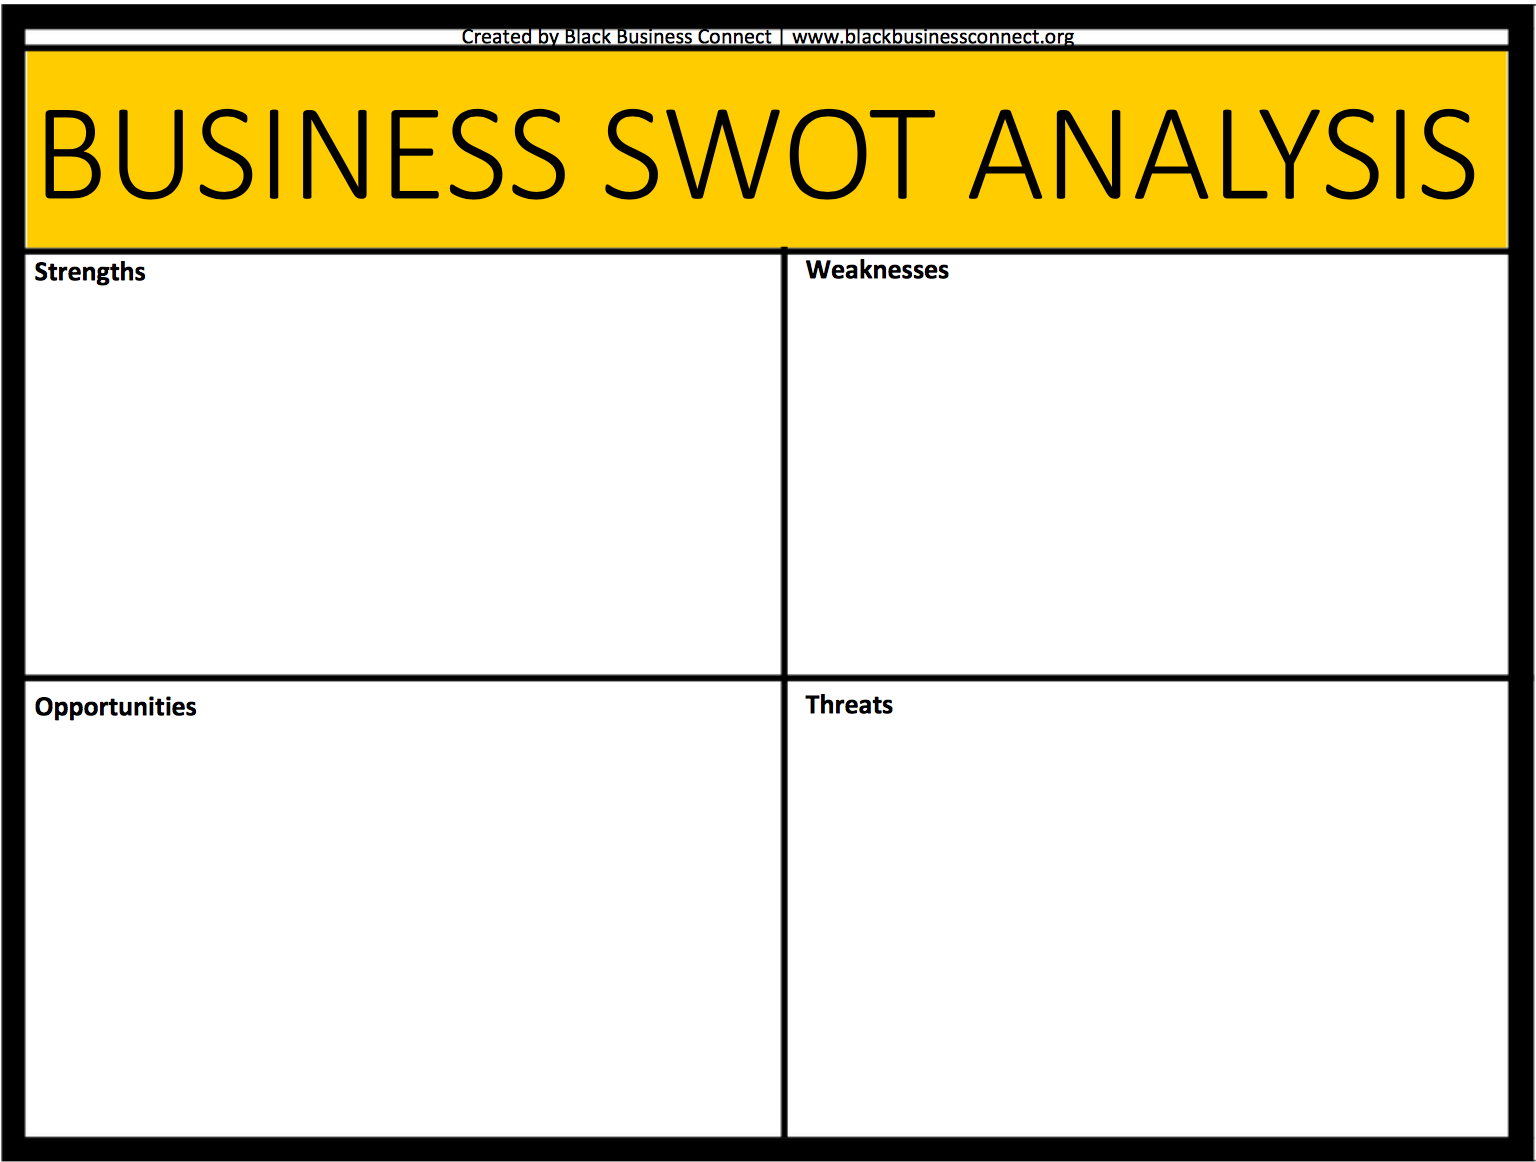 Assess Your Business Strength By Conducting A Swot Analysis The